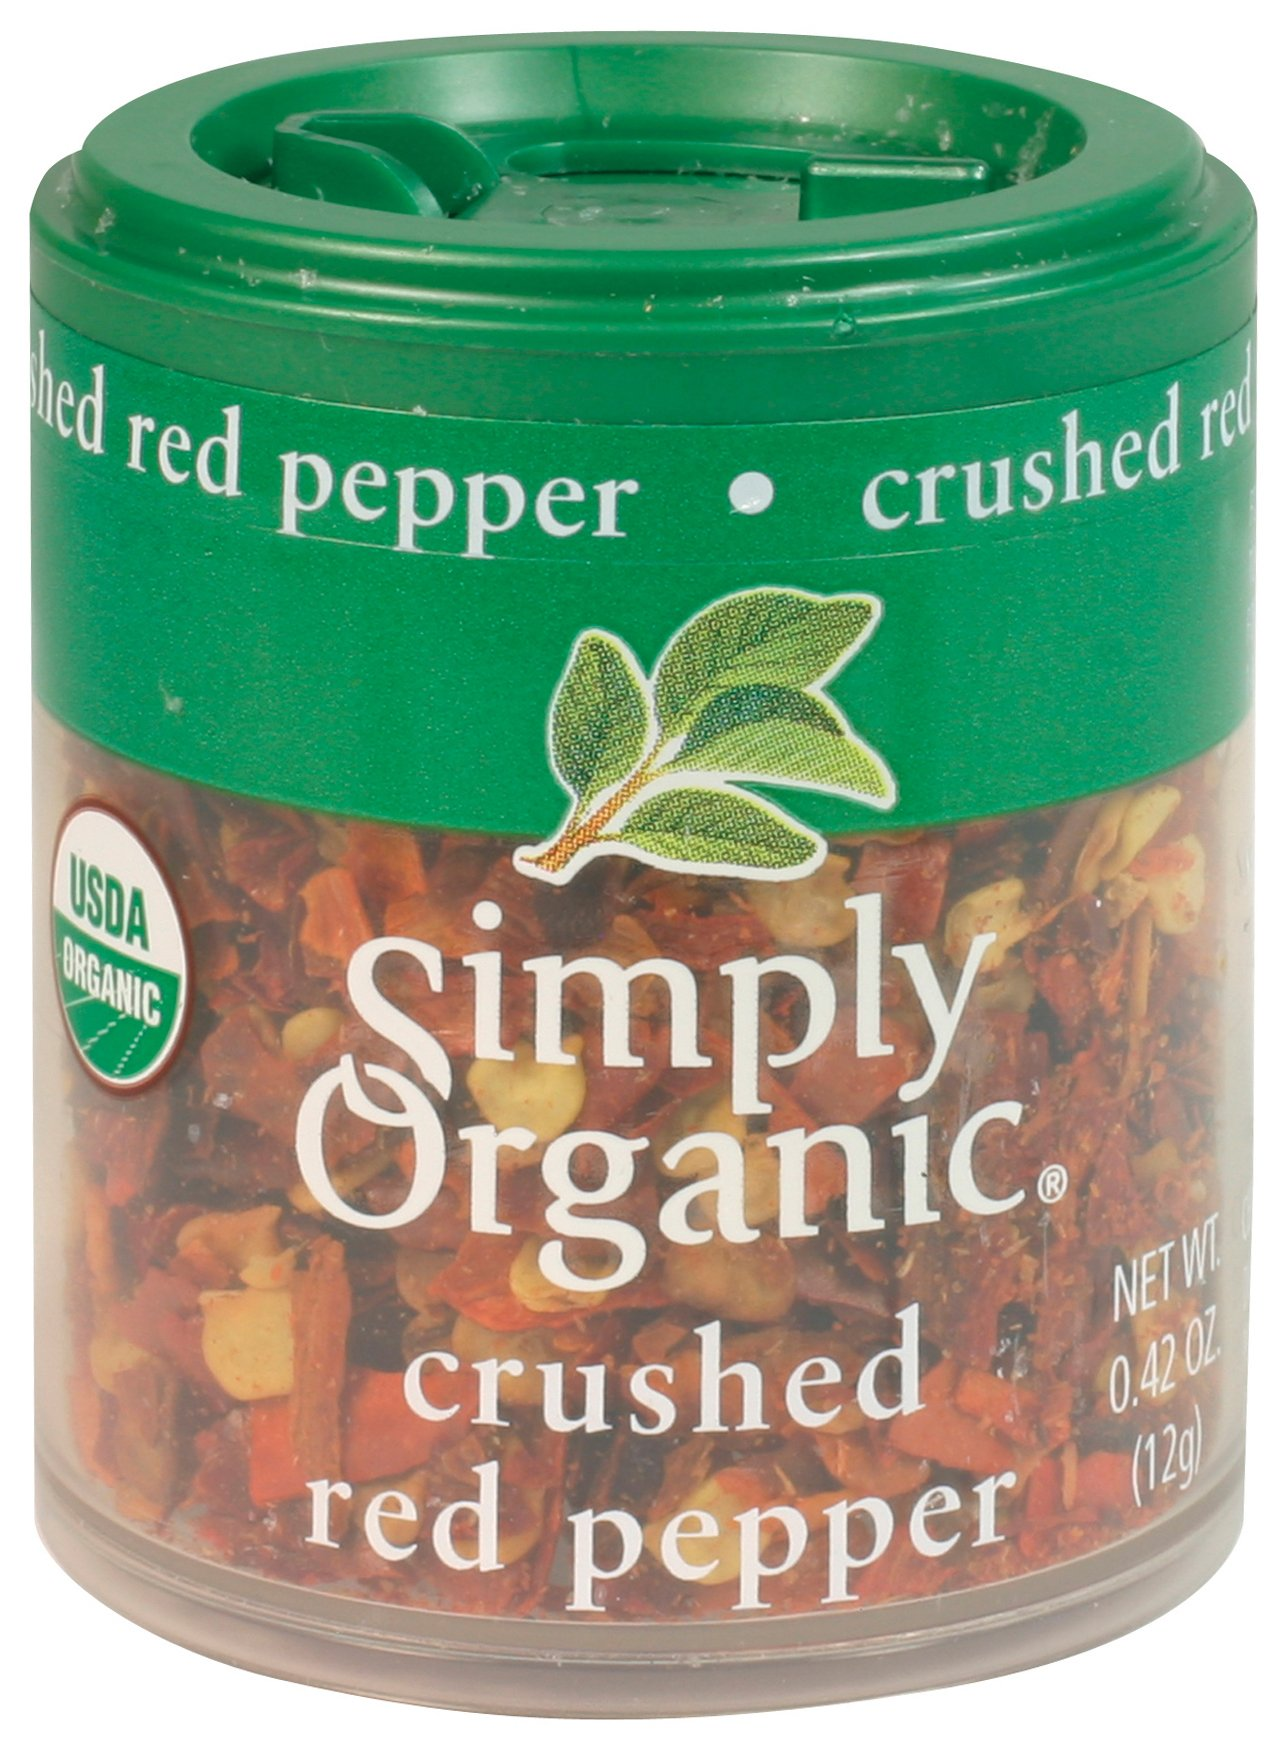 Simply Organic Red Pepper Crushed Certified Organic, 0.42-Ounce (Pack of 6) by Simply Organic (Image #2)